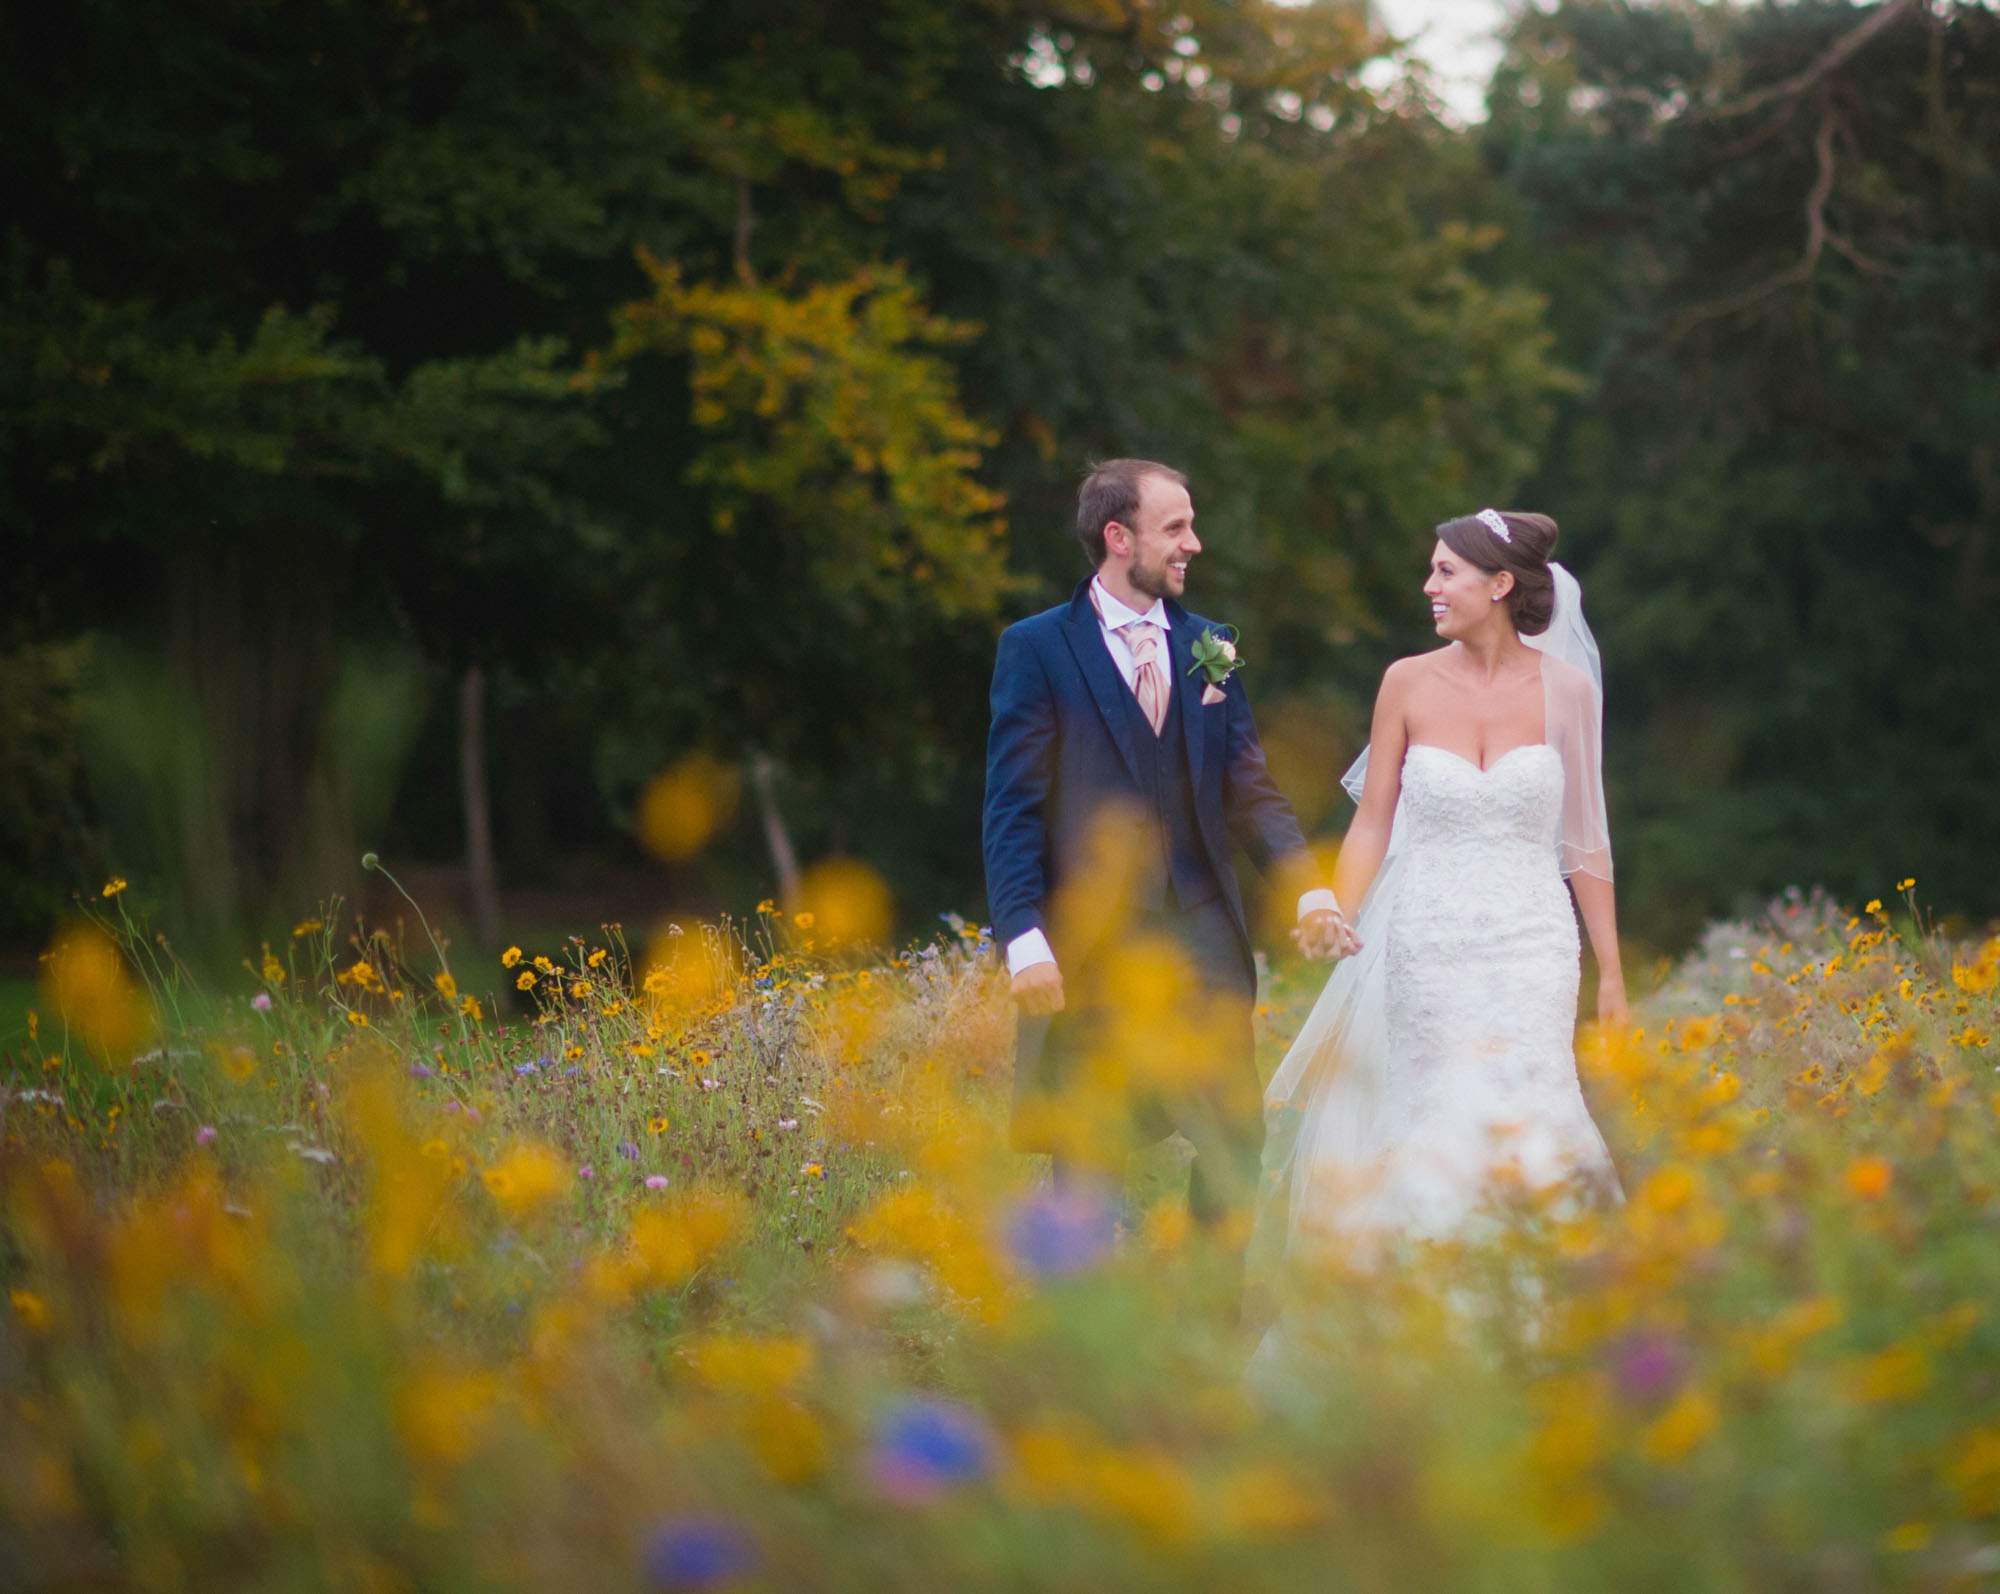 rossington hall wedding photo003.jpg